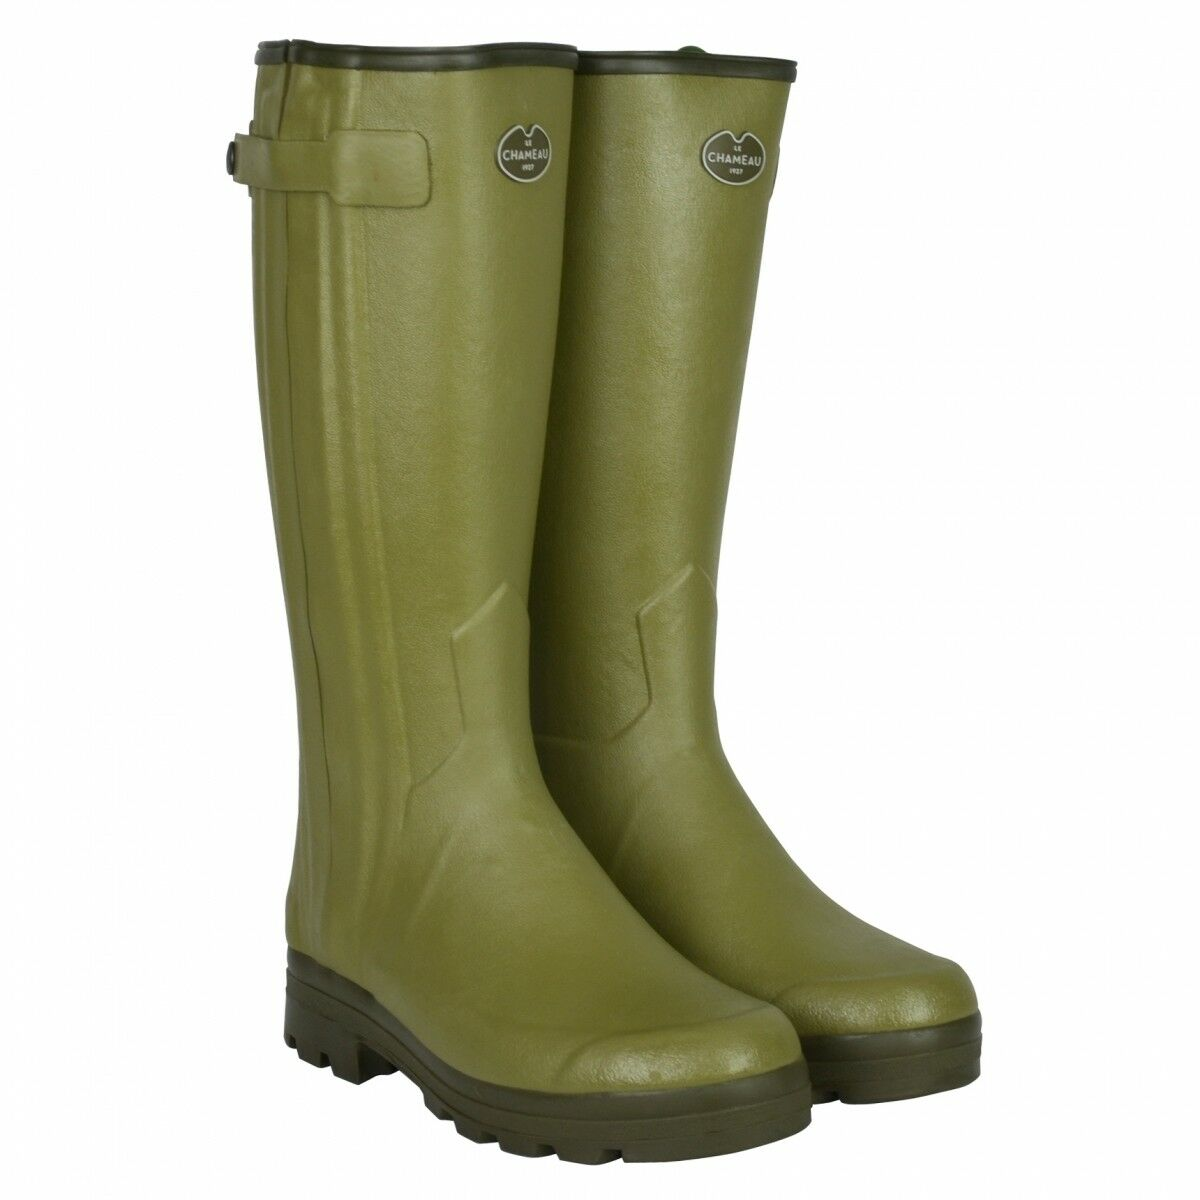 Le Chameau Chasseurnords Mens Full Zip Neoprene Wellington boots FREE UK P&P